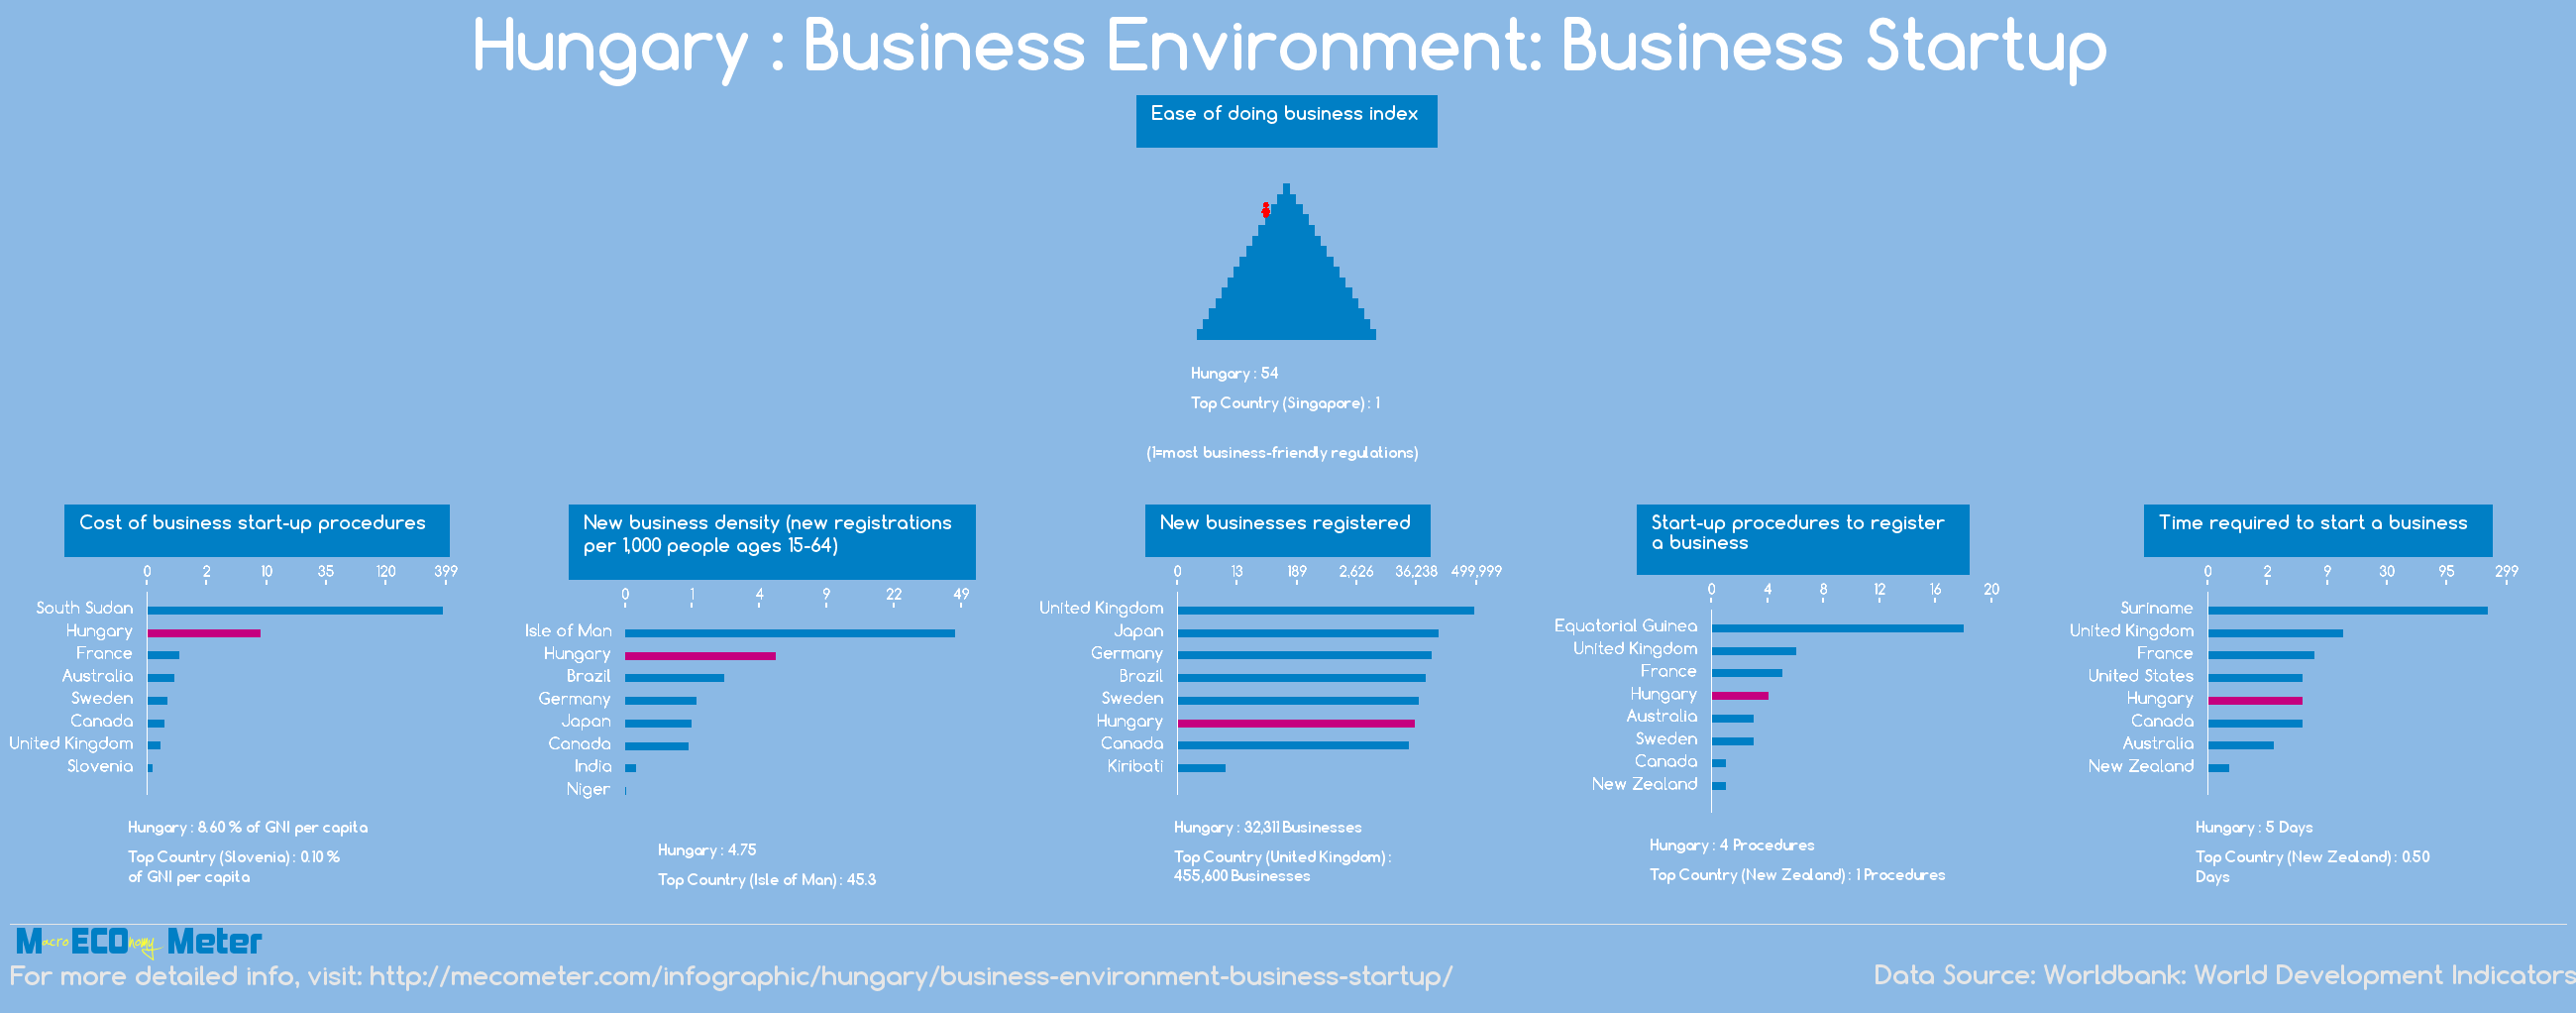 Hungary : Business Environment: Business Startup